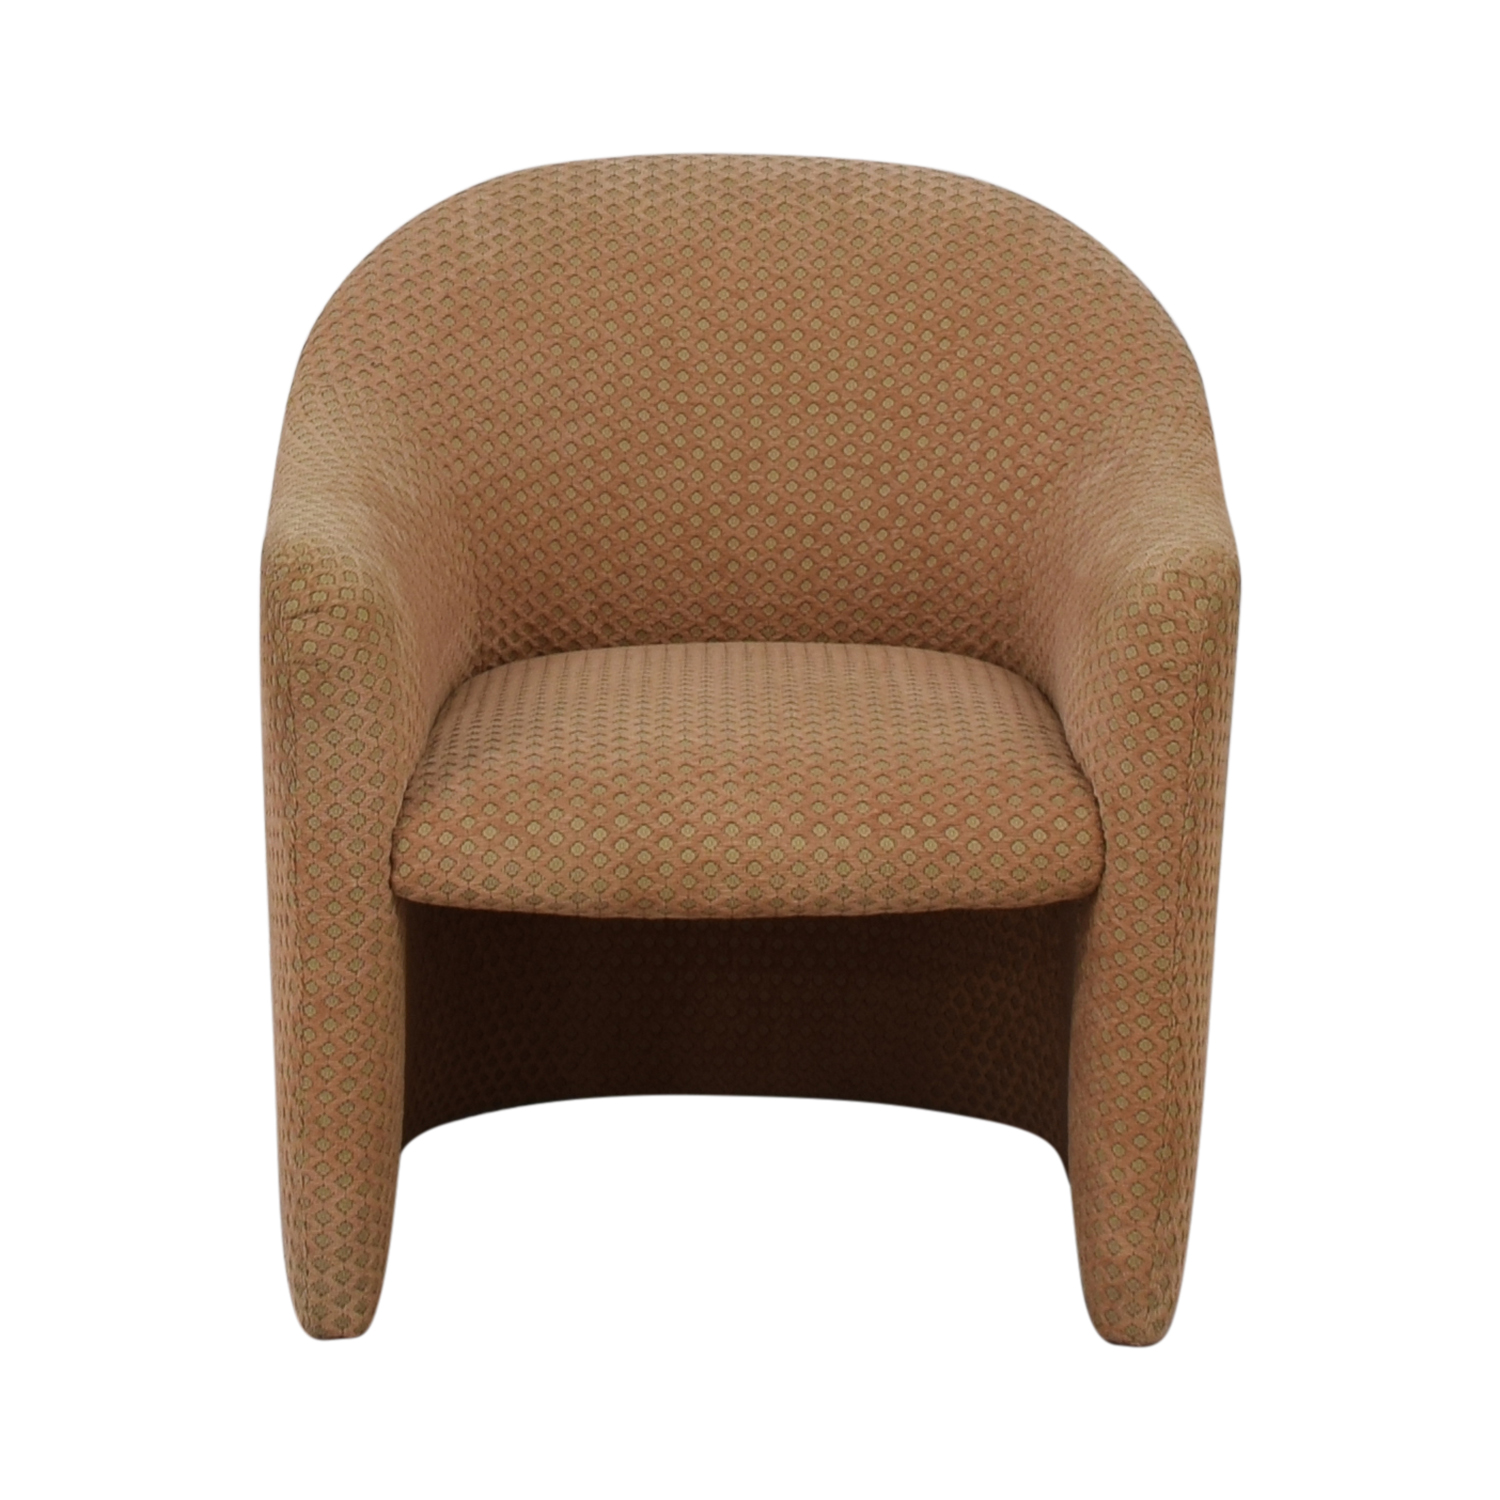 Gunlocke Company Gunlocke Company Dotted Accent Chair on sale